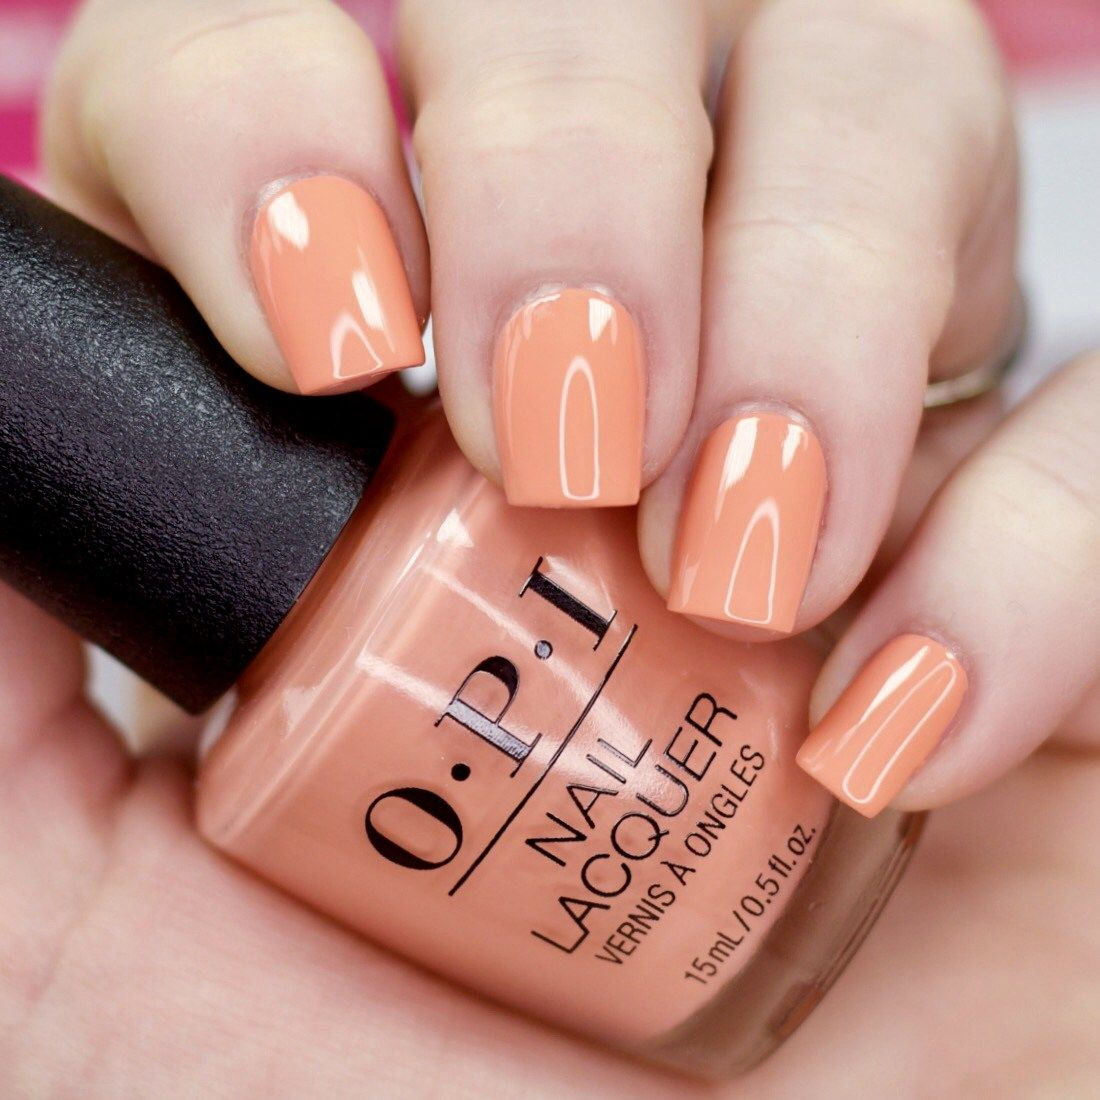 Opi Mexico City Collection Spring 2020 In 2020 Nail Colors